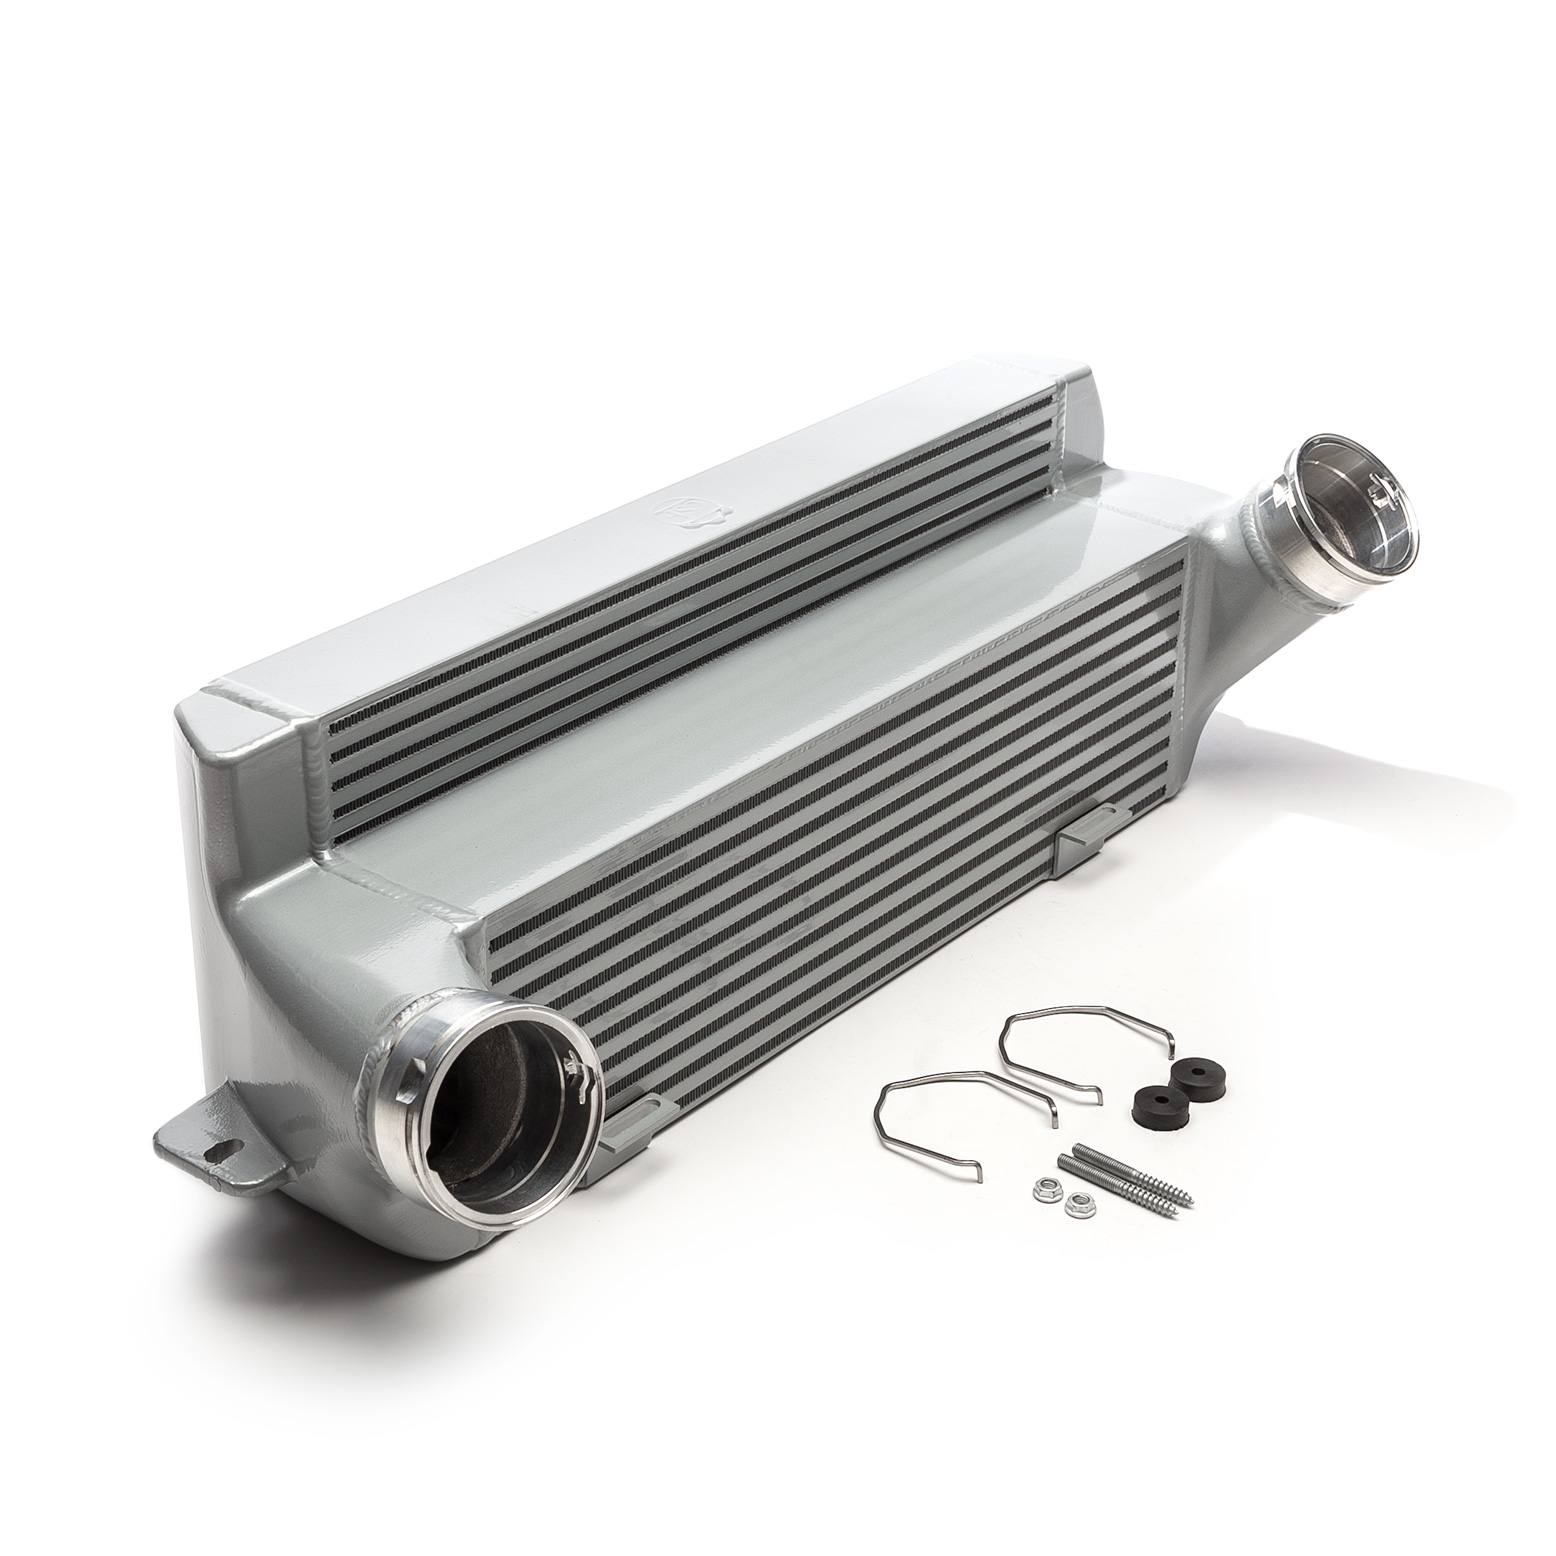 Cobb Tuning/CSF N54/N55 Front Mount Intercooler: BMW 1M 2011, 135i 2008-2013 & 335i 2007-2013 (SILVER)